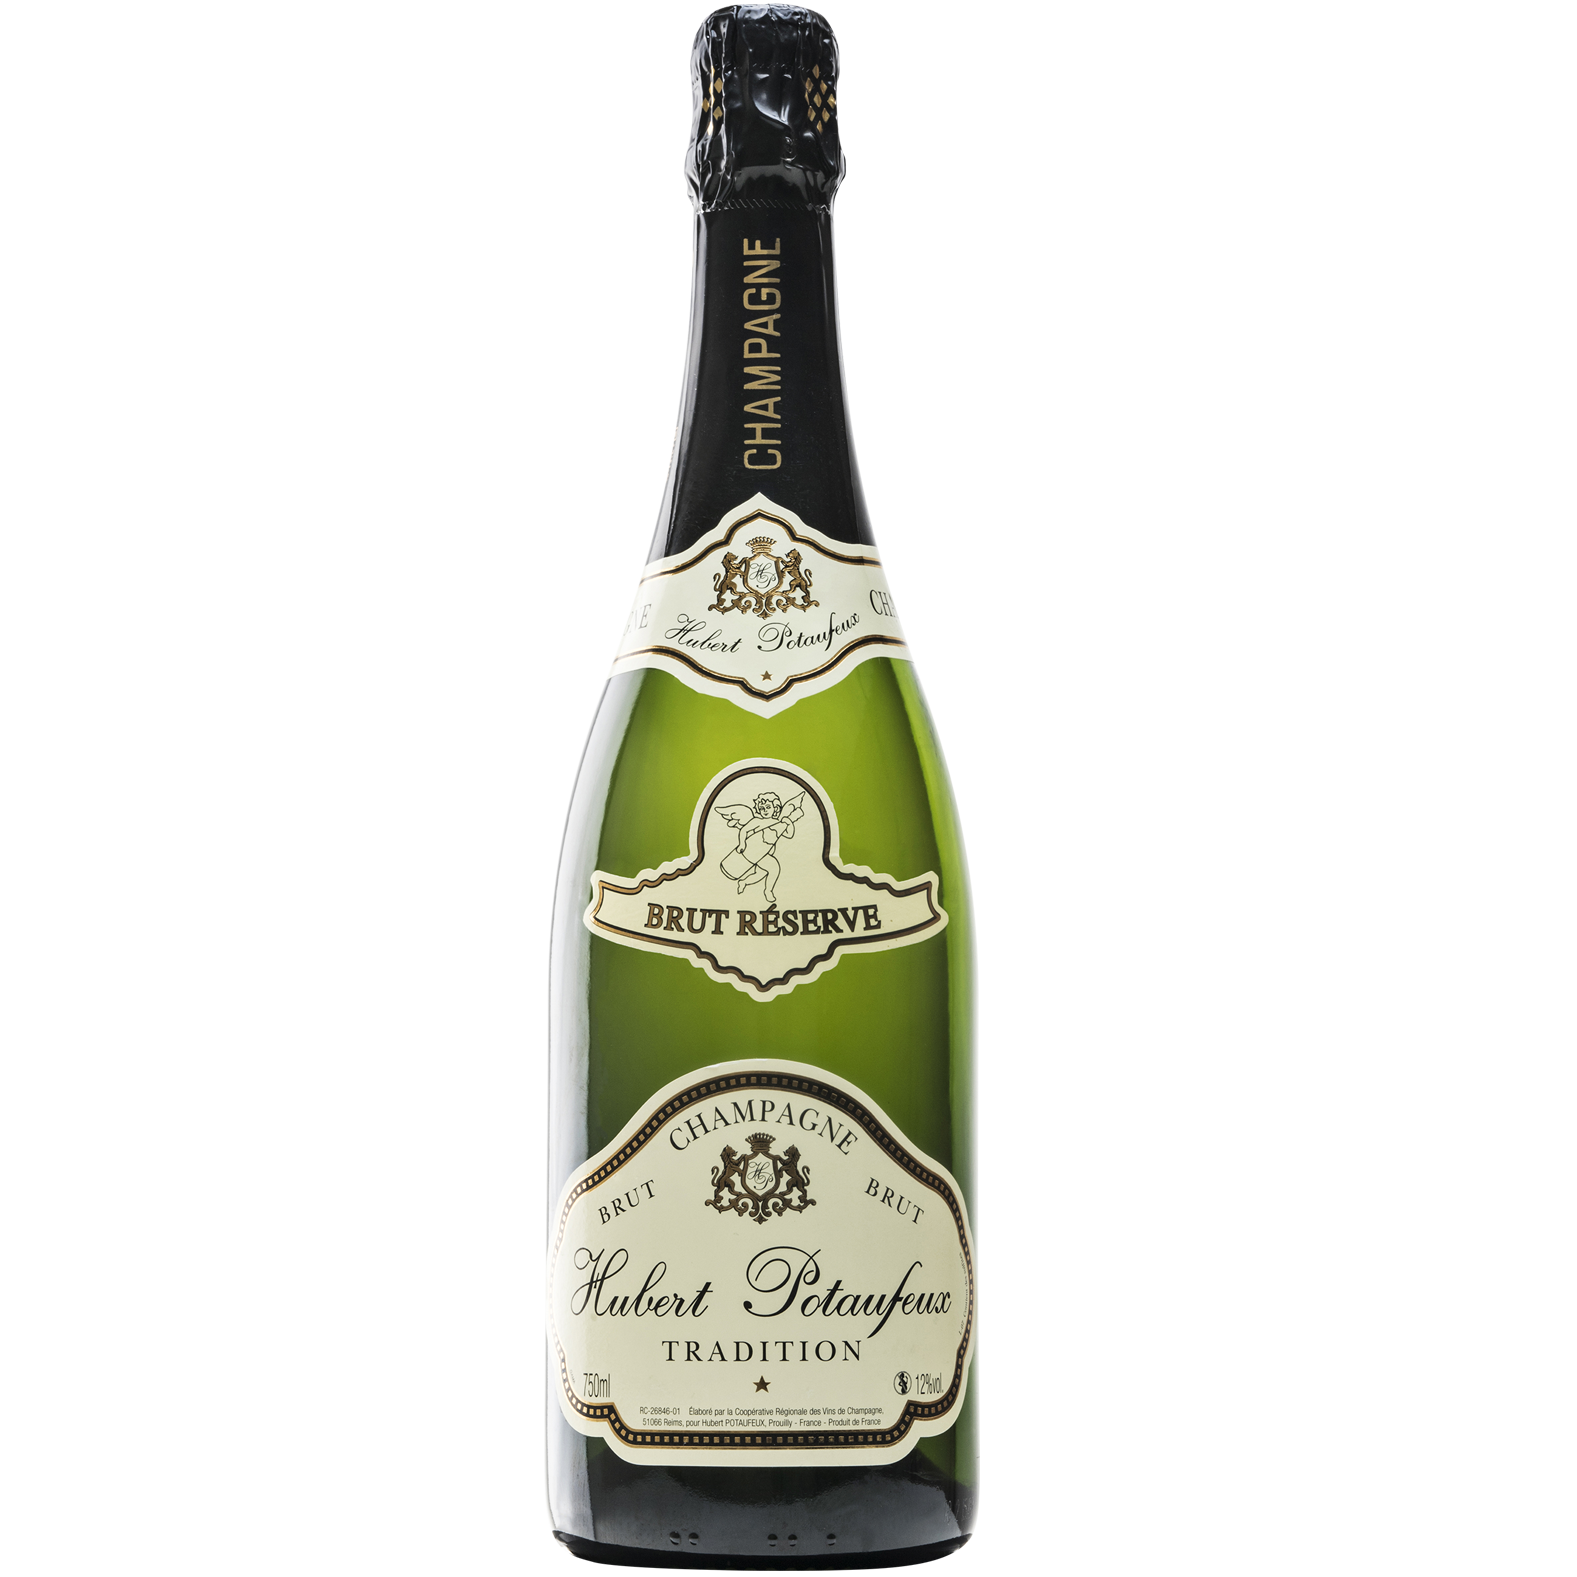 Champagne Hubert Potaufeux Prouilly